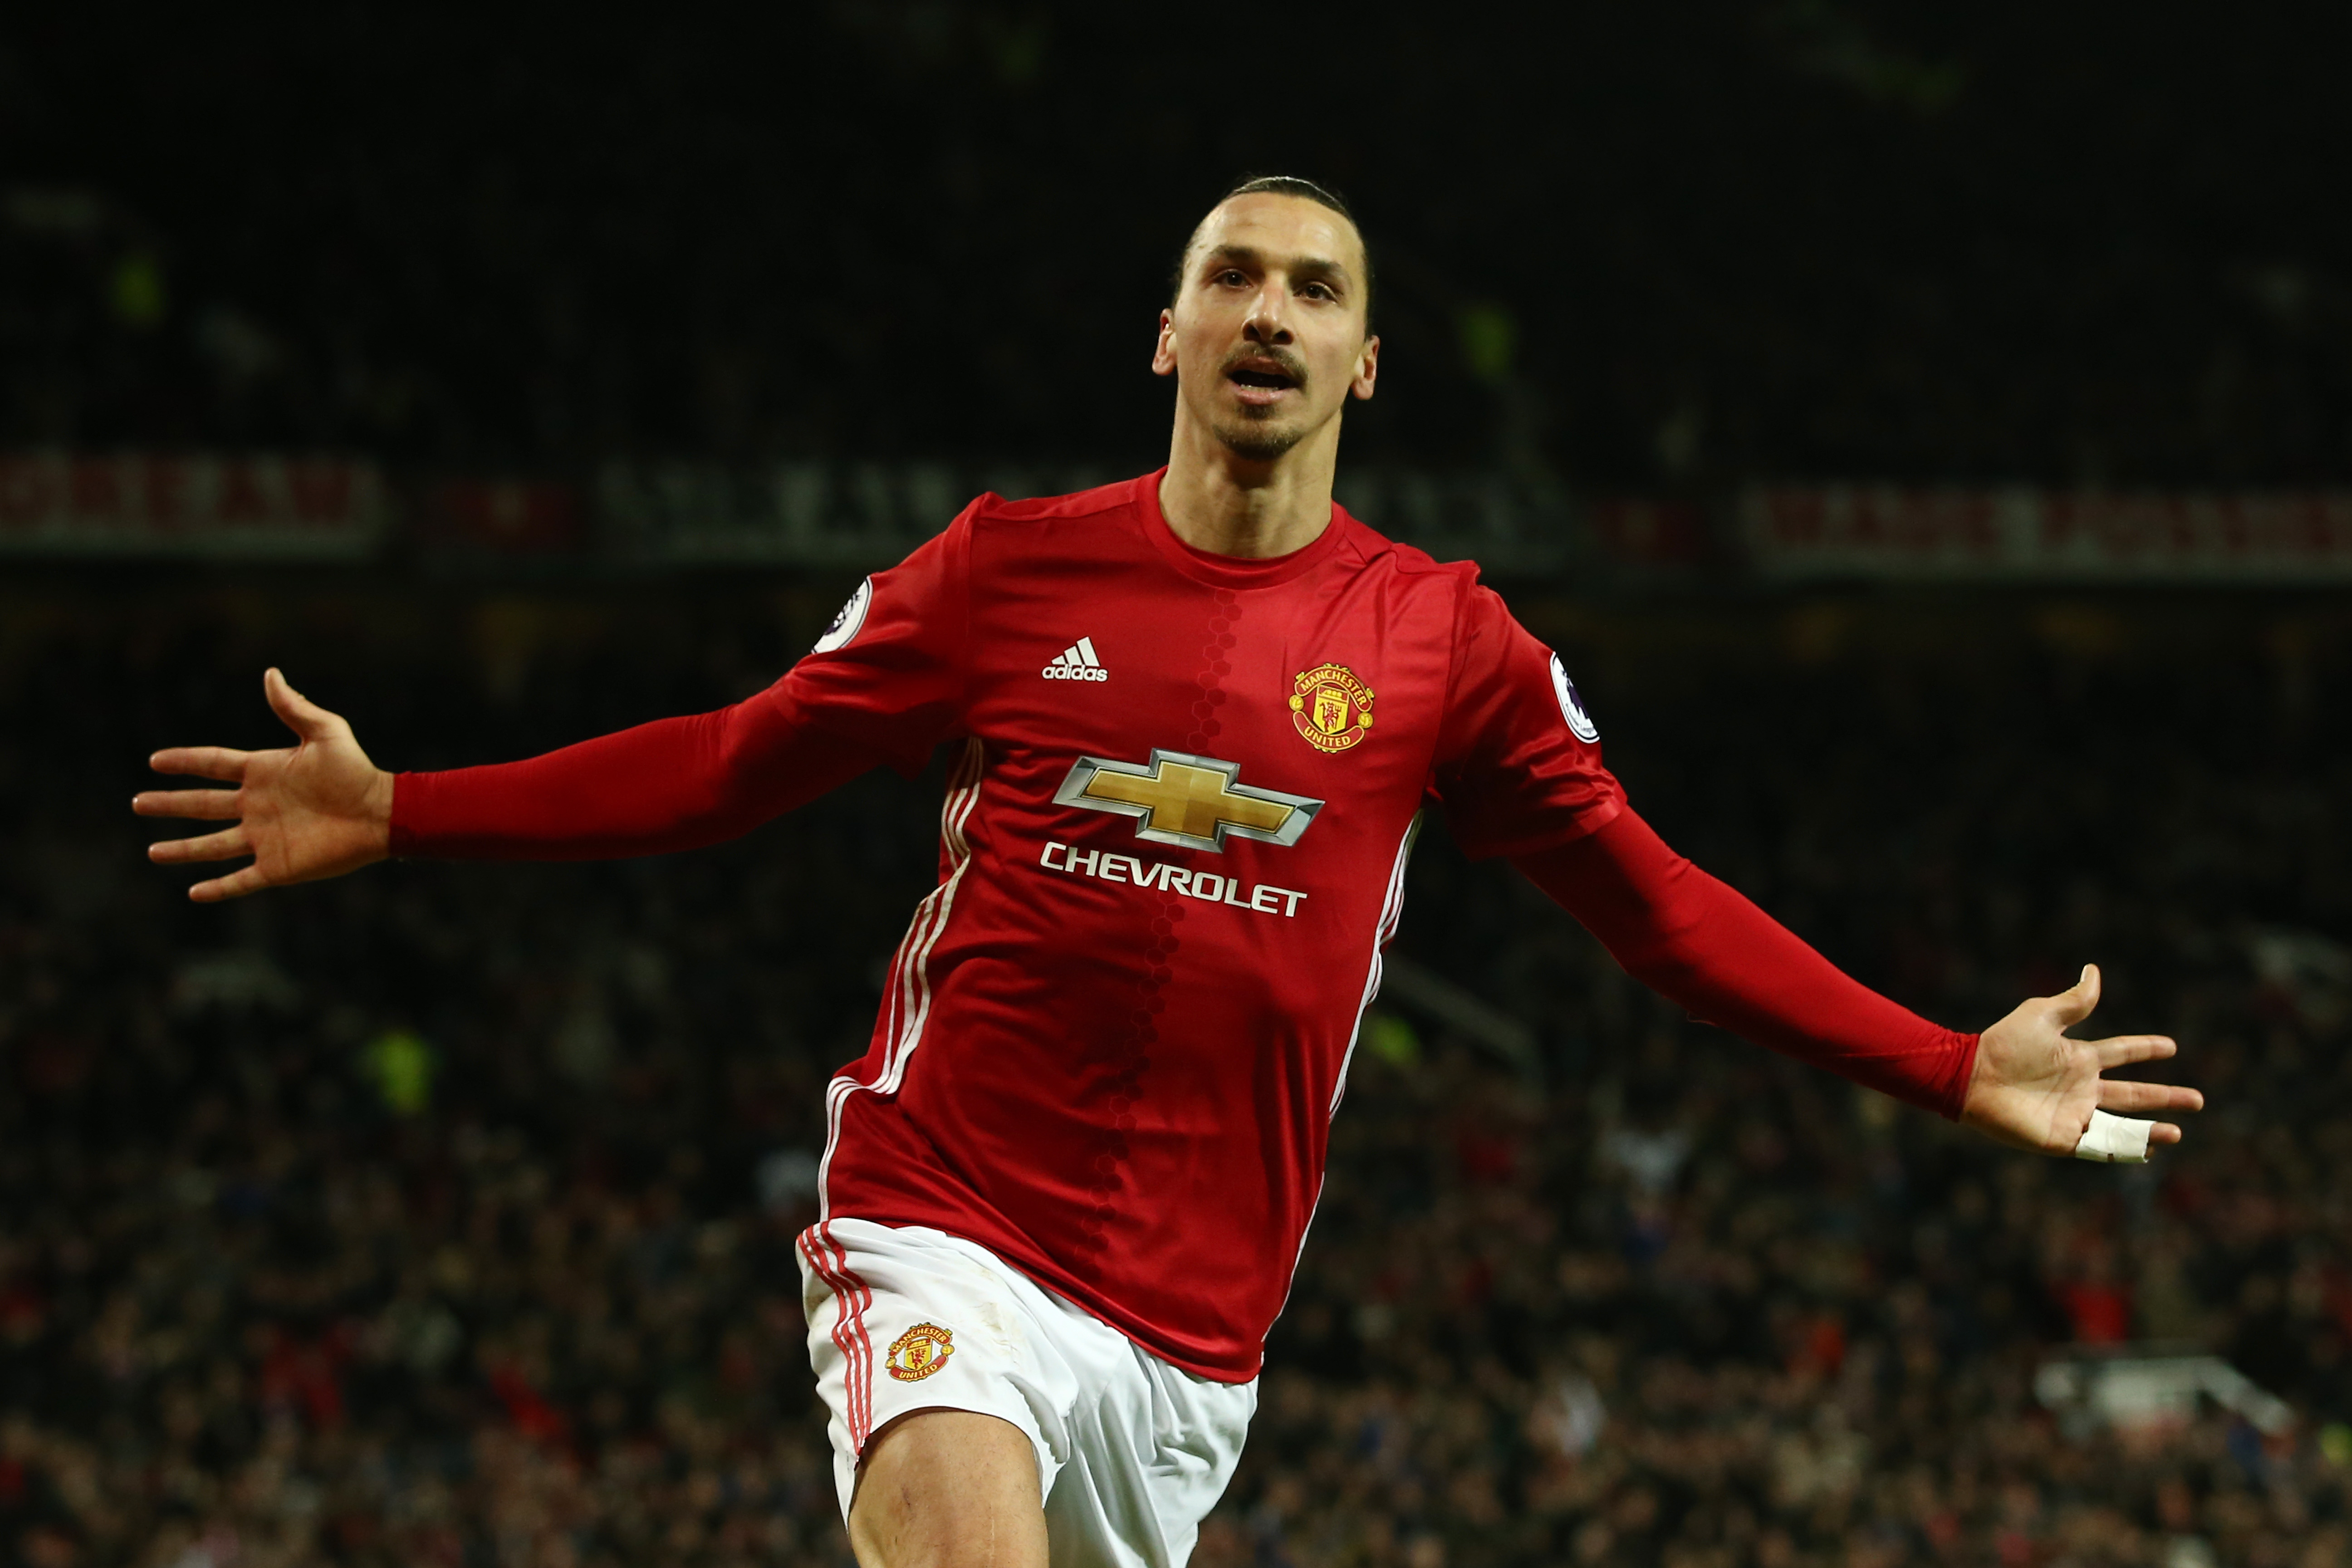 Manchester United Zlatan Ibrahimovic In Superb Shape And